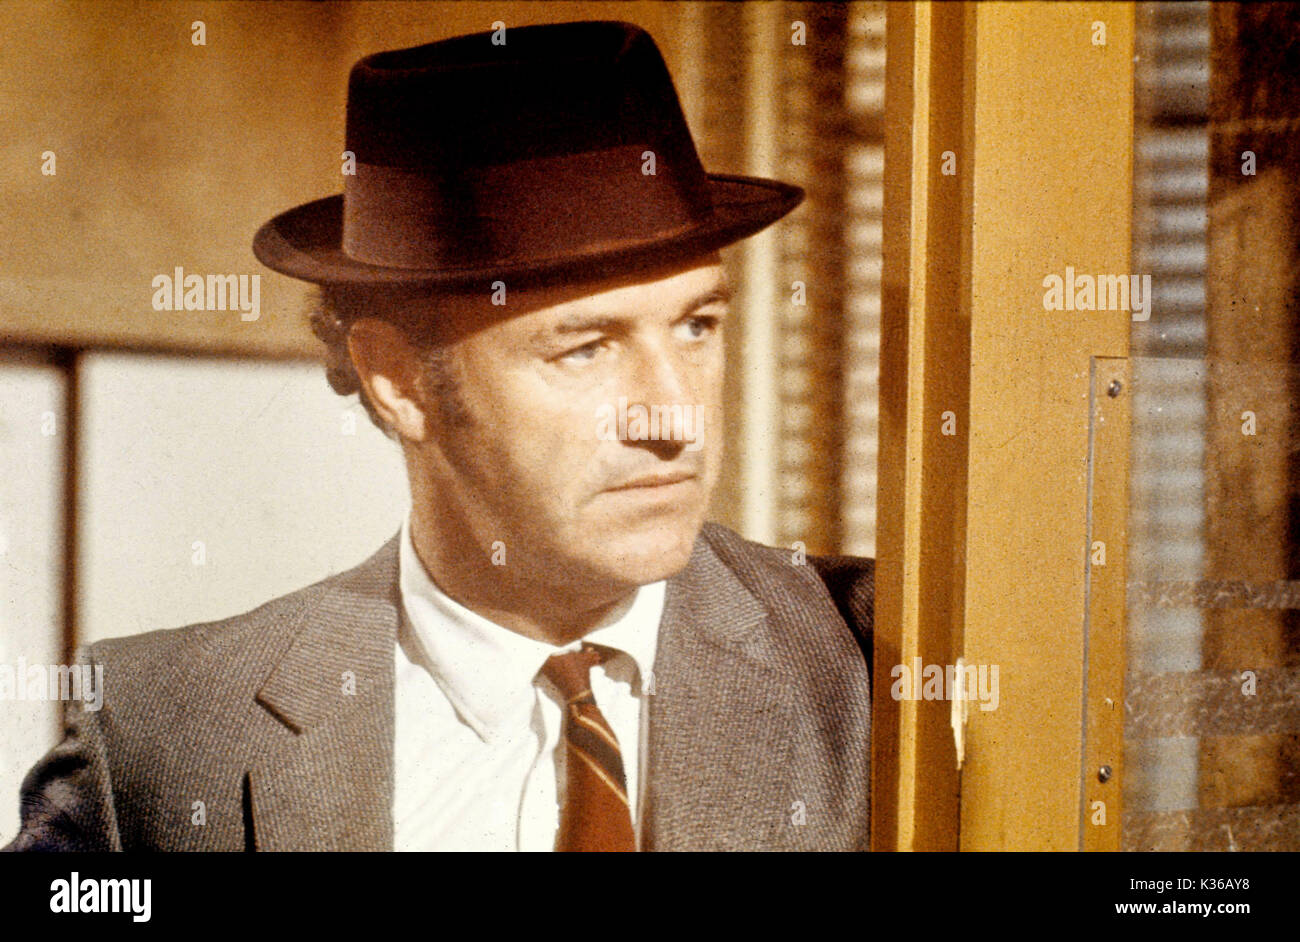 b218301168d THE FRENCH CONNECTION C20TH FOX GENE HACKMAN Picture from the Ronald Grant  Archive THE FRENCH CONNECTION C20TH FOX GENE HACKMAN Date: 1971